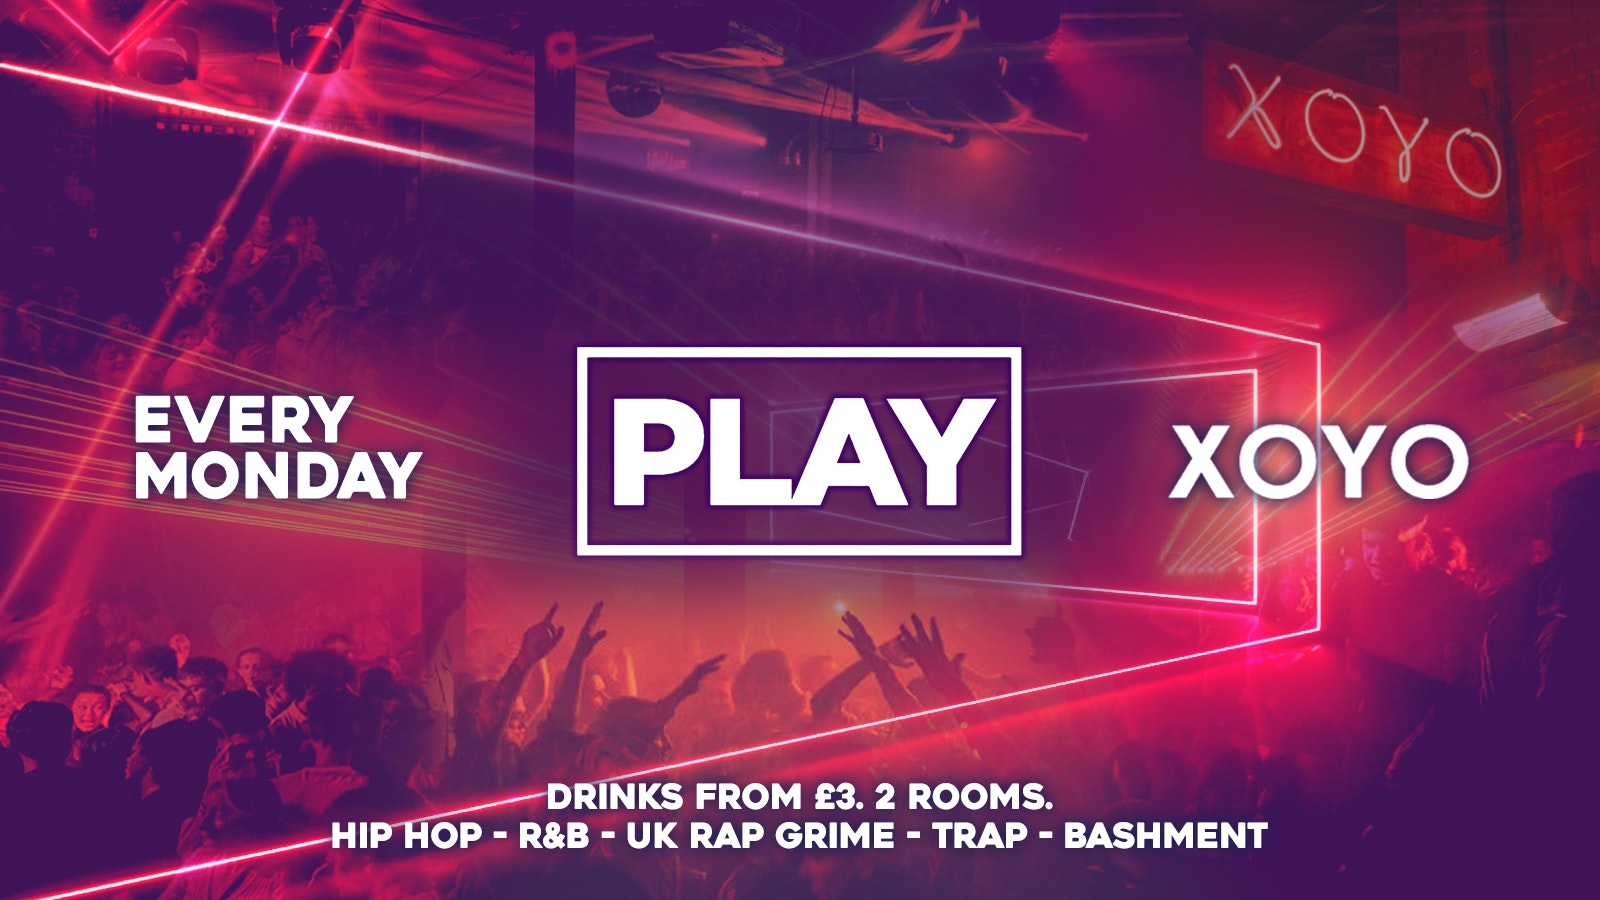 Play London is BACK! The Biggest Weekly Monday Student Night in London // This event will SELL OUT – London Freshers 2021